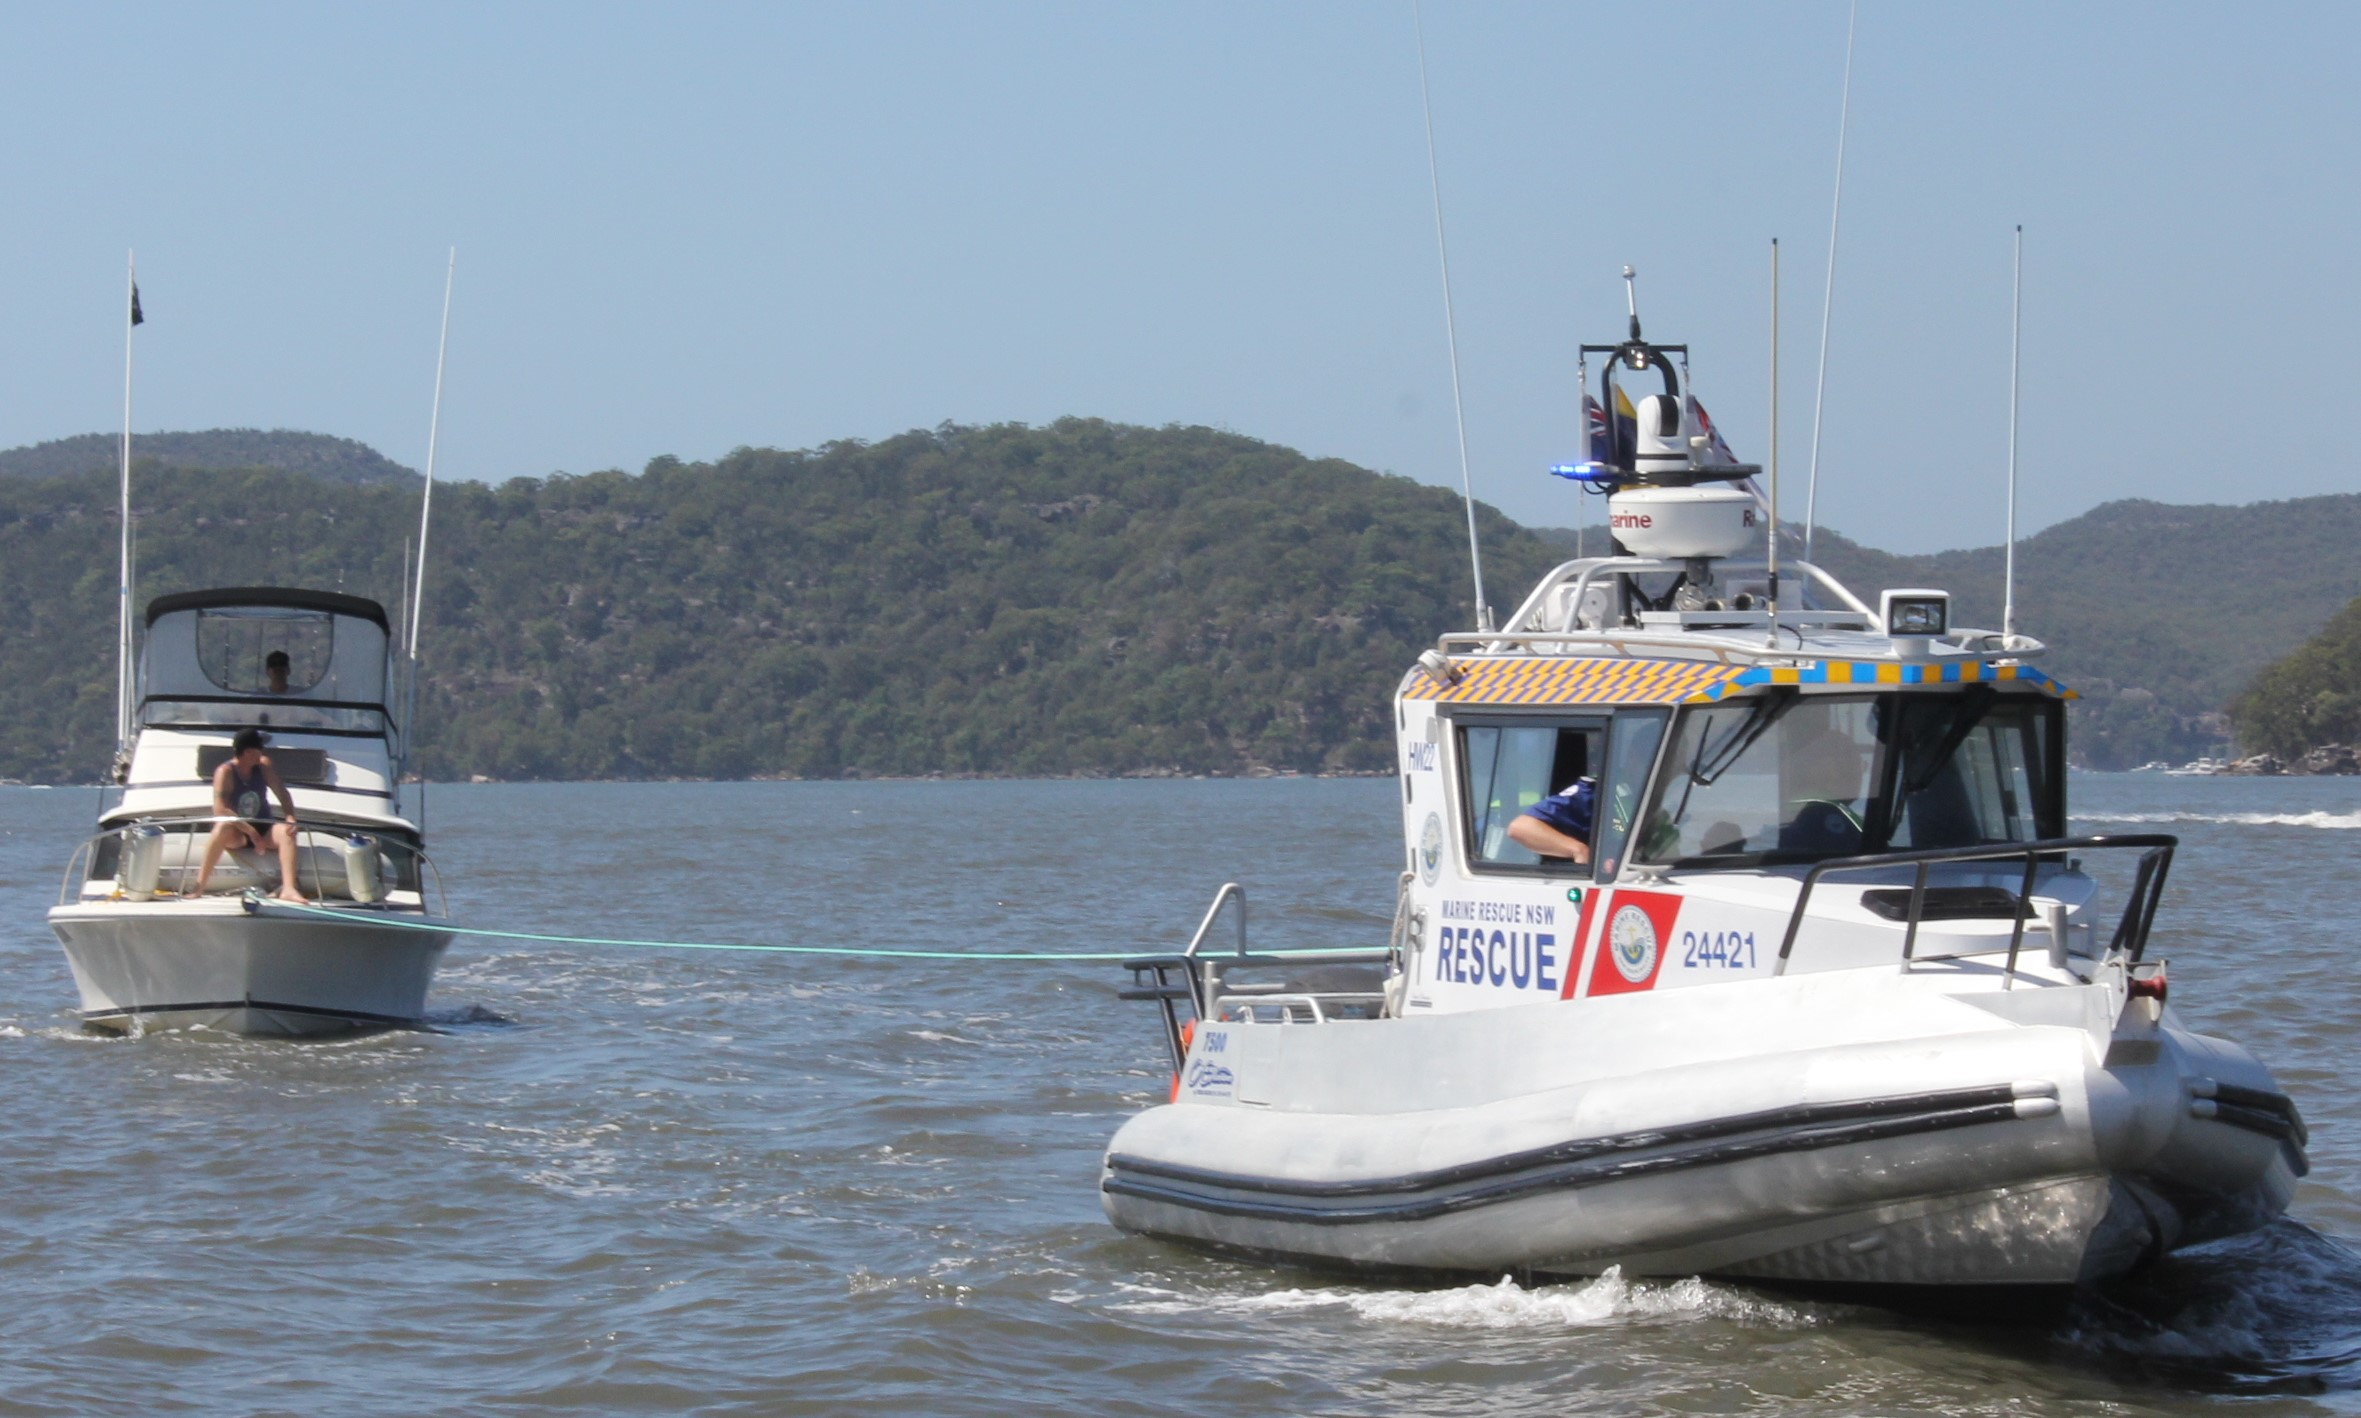 NSW Marine Rescue carries out a rescue tow of a powerboat. (Should get a yacht).